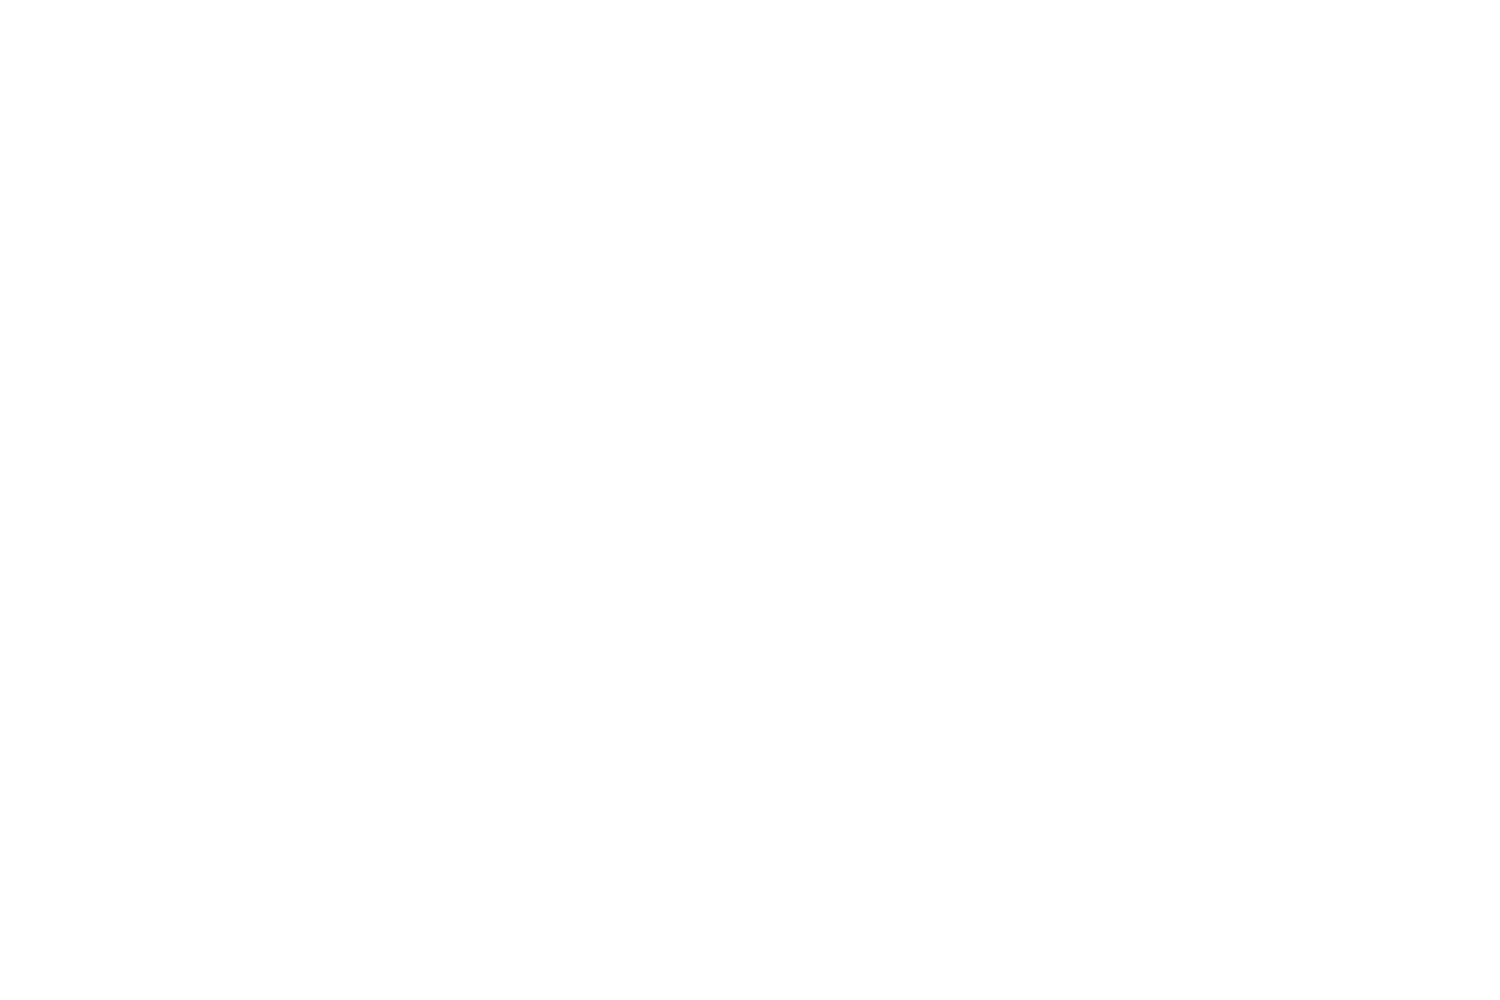 Revelation Outdoors